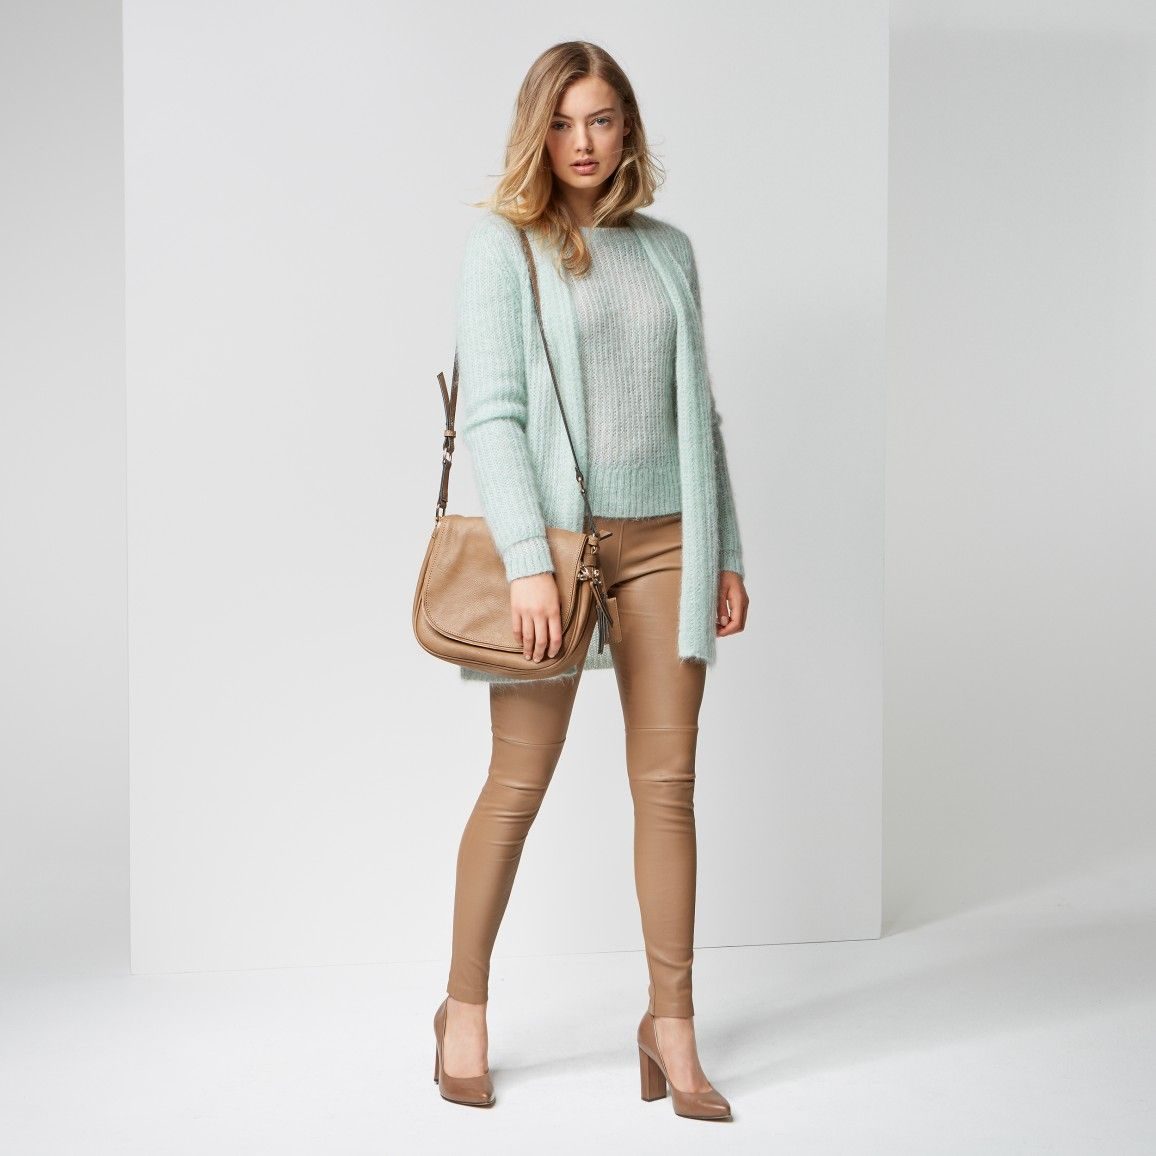 Shop the Look | Alltagsmode, Outfit, Mode